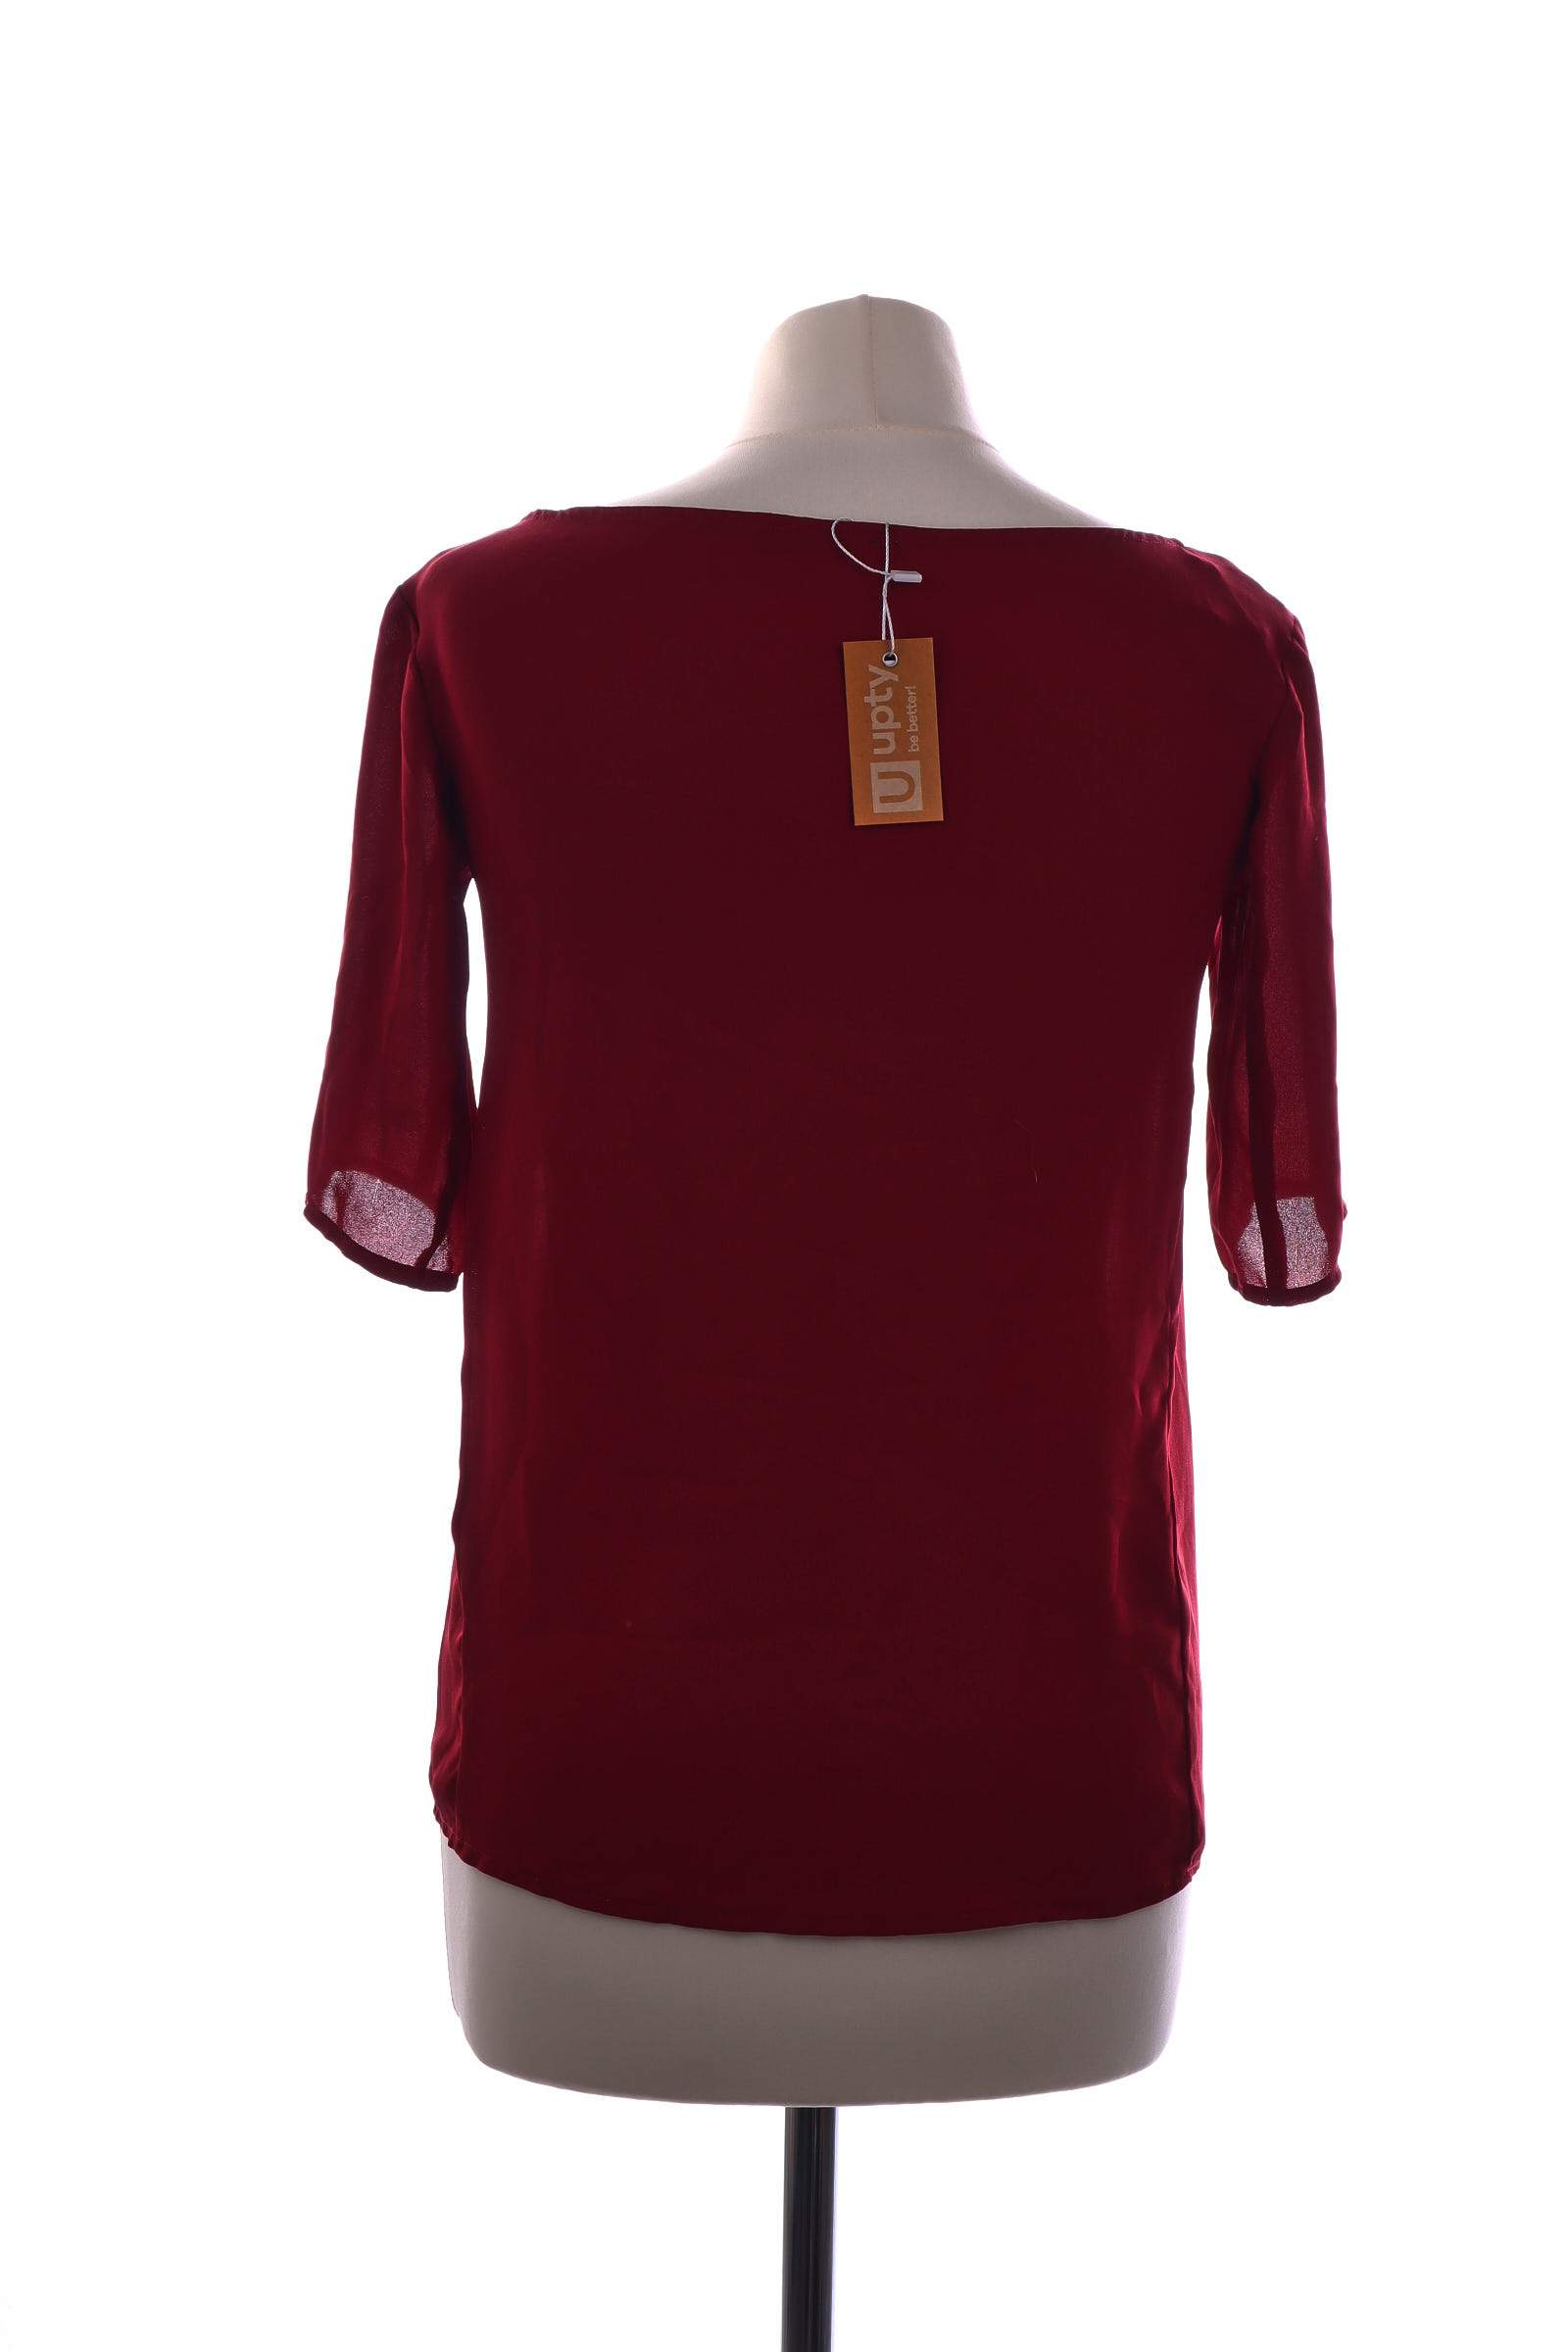 Incity Burgundy Top